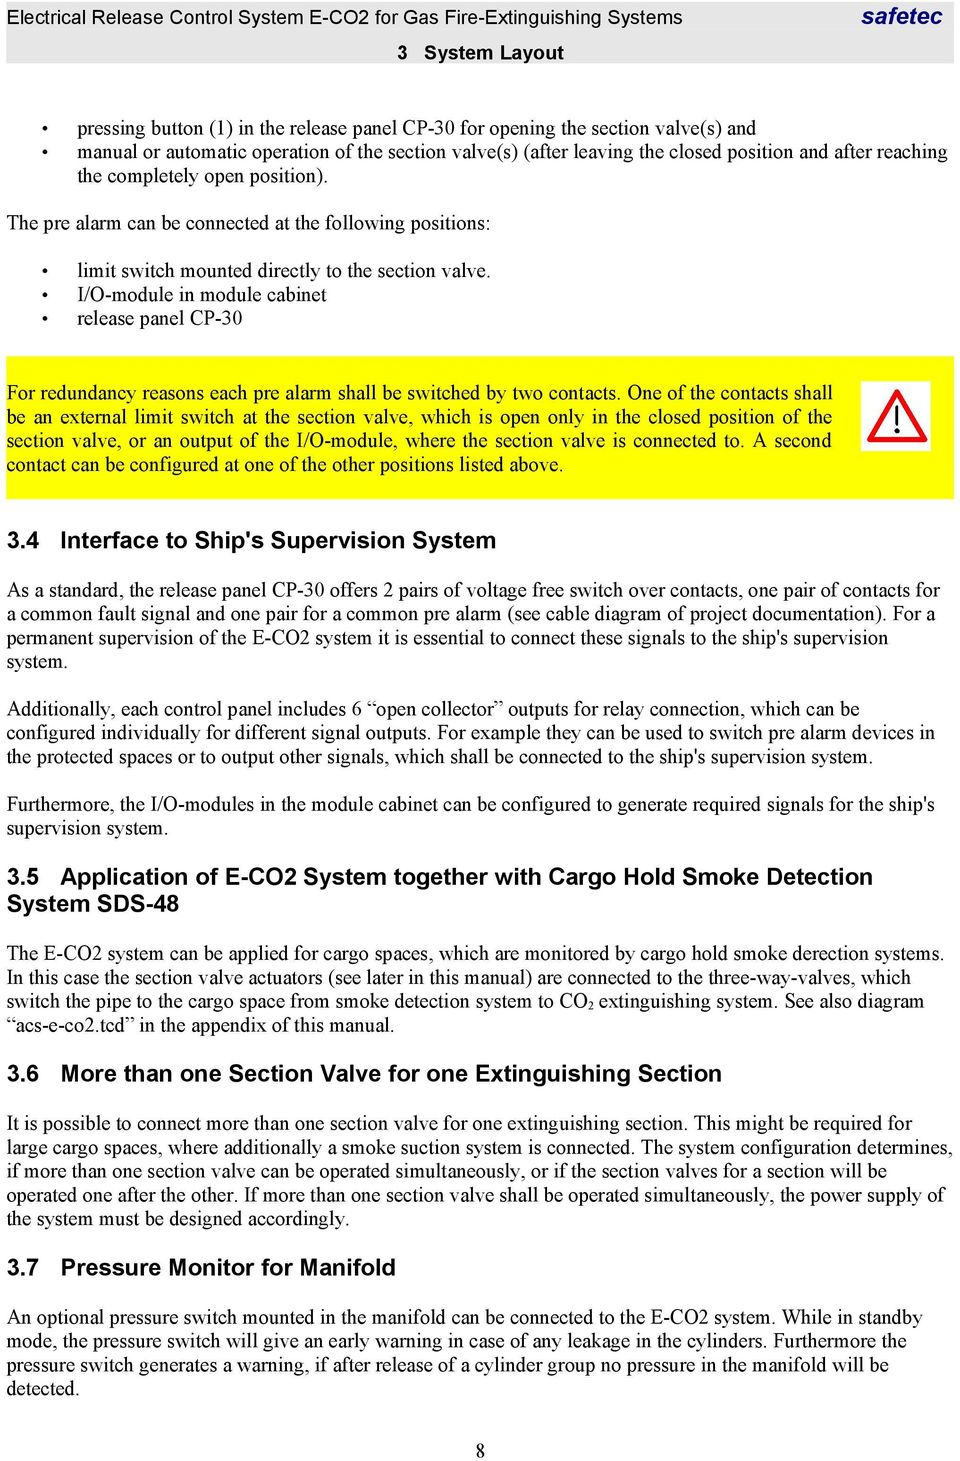 Operation Manual Electrical Release Control System E Co2 For Gas Additionally Series Circuit Diagram Further Fire Alarm I O Module In Cabinet Panel Cp 30 Redundancy Reasons